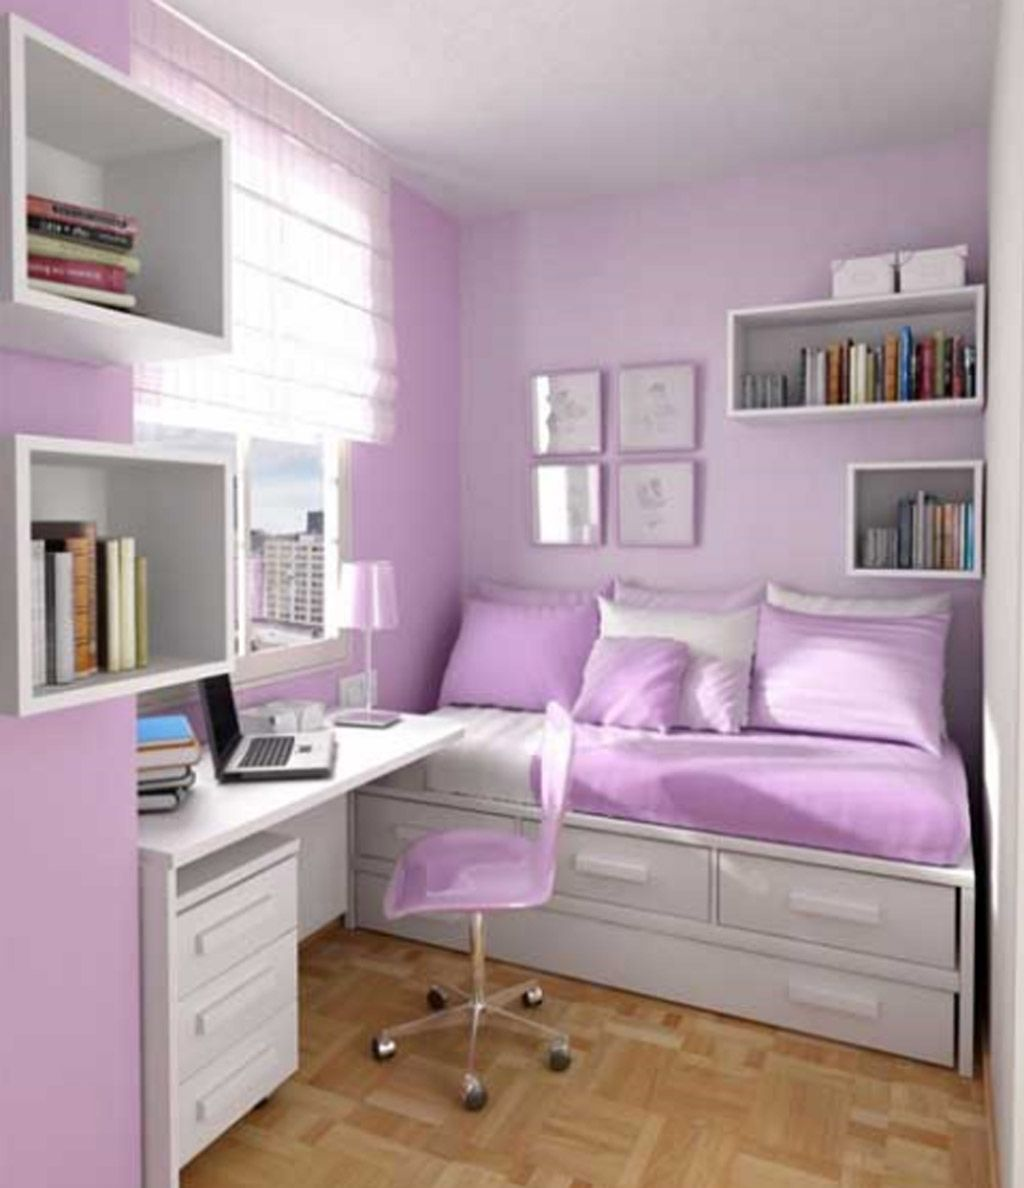 Bedroom ideas for teenage girls purple and pink - Cute Bedroom Ideas For Teenage Girls Best Interior Design Blogs Fashion Pinterest